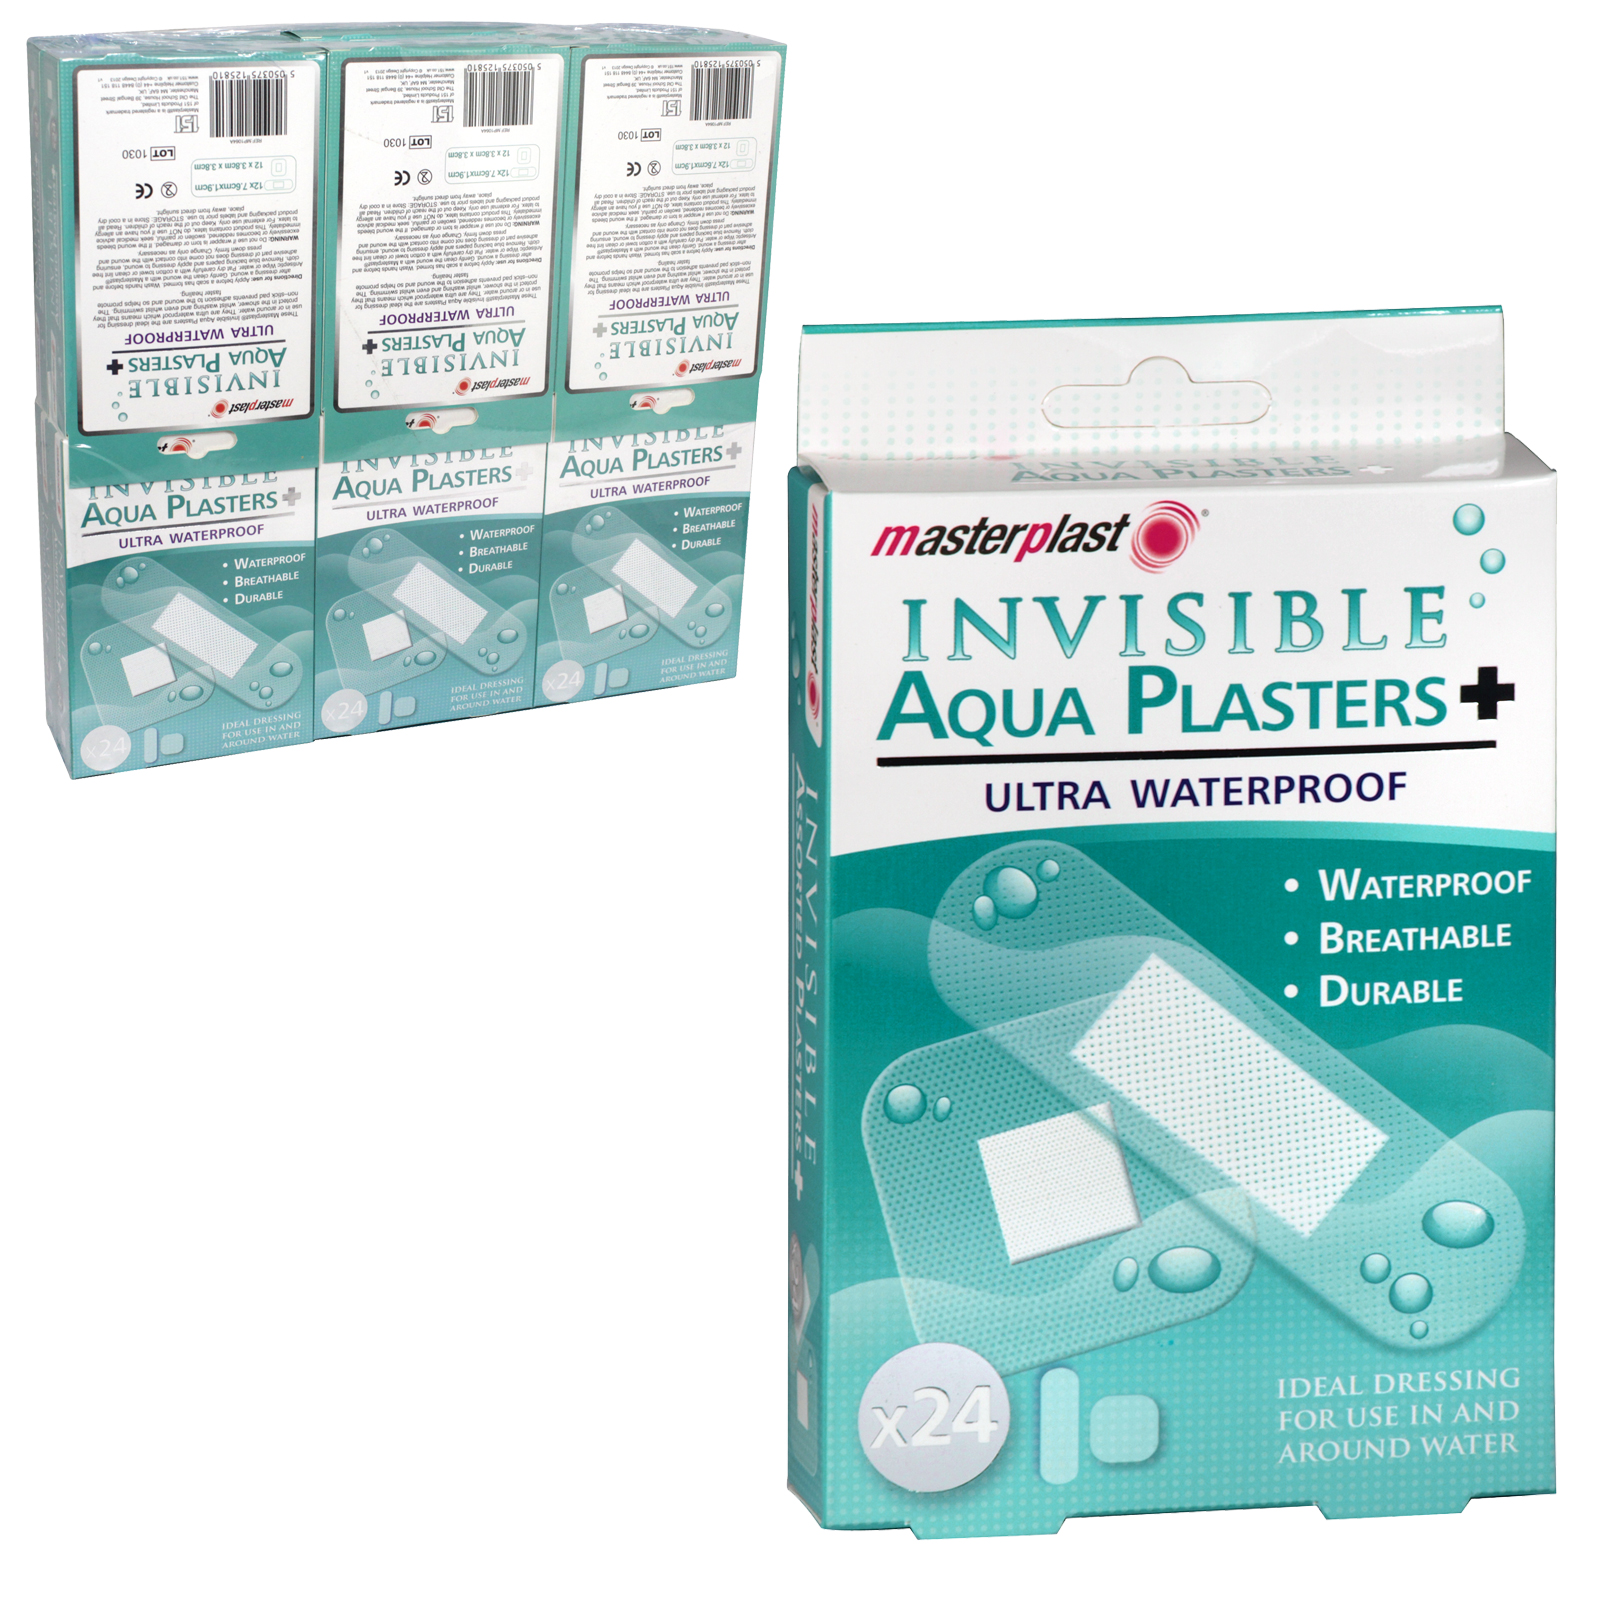 MASTER PLASTER 24 INVISIBLE AQUA PLASTERS ULTRA WATERPROOF X12